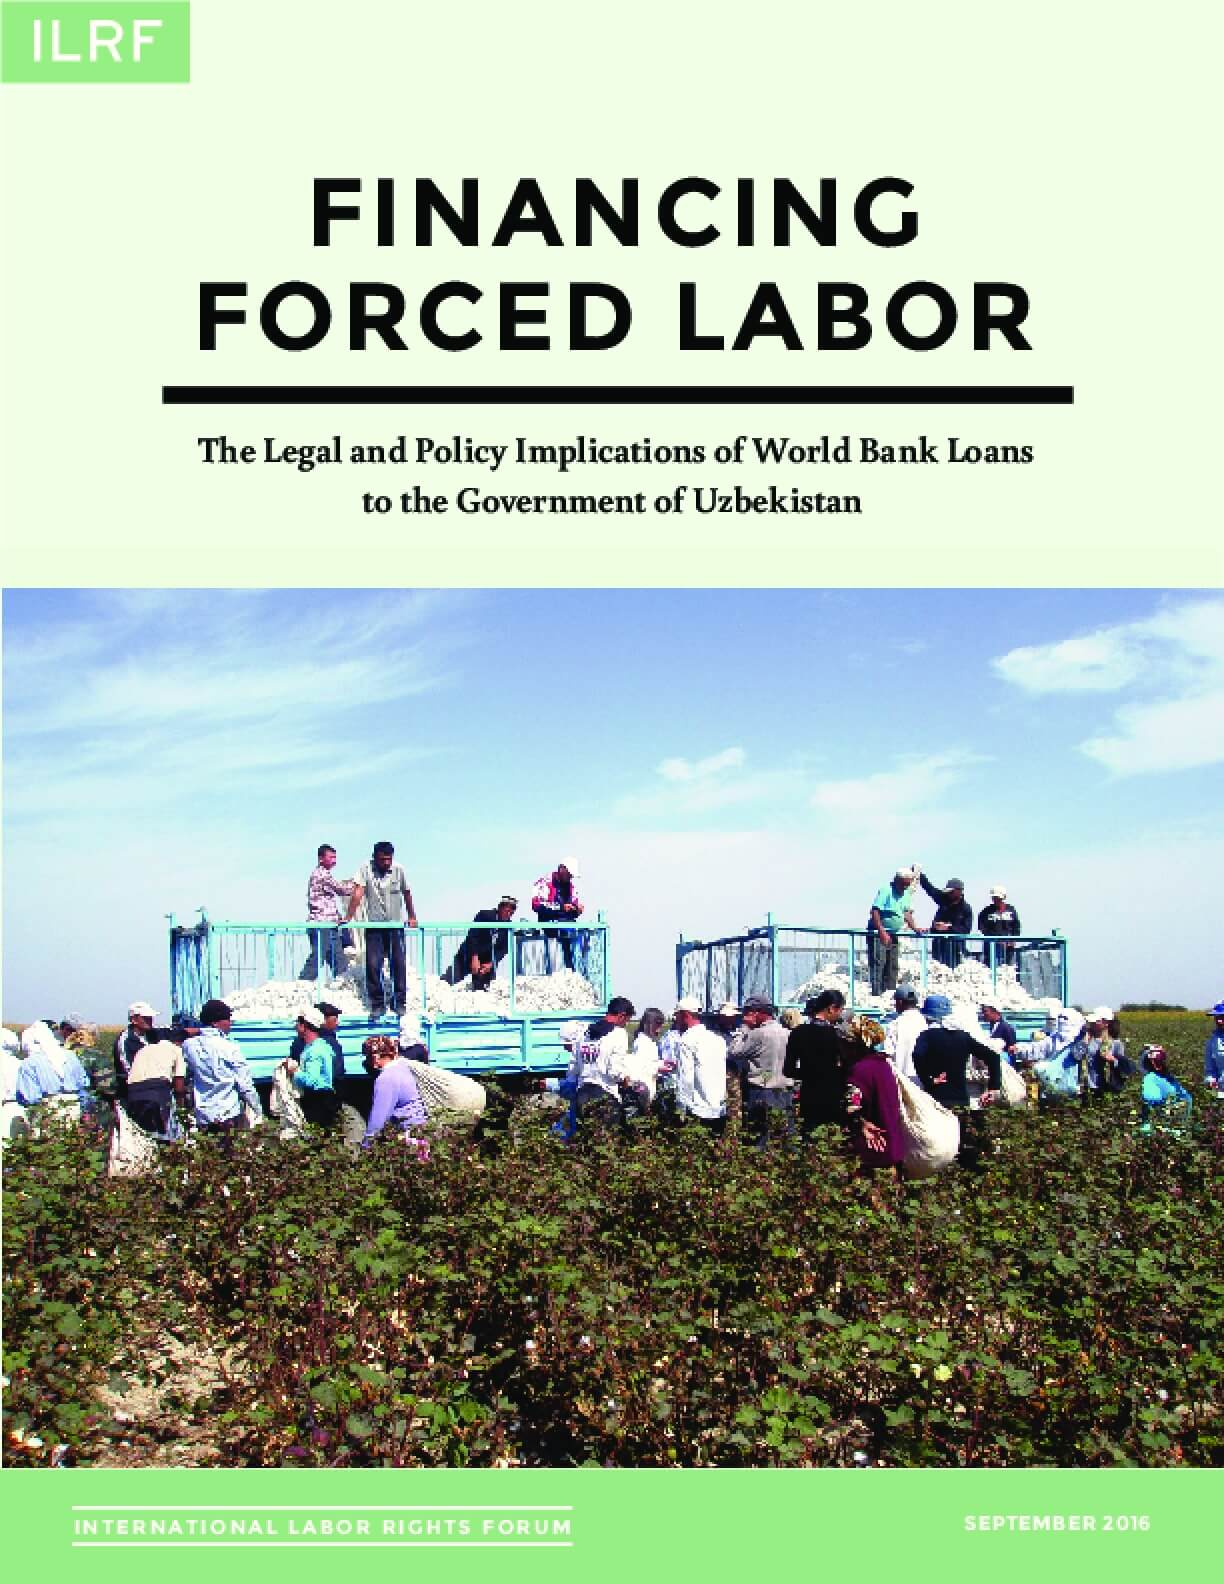 Financing Forced Labor: The Legal and Policy Implication of World Bank Loans to the Government of Uzbekistan